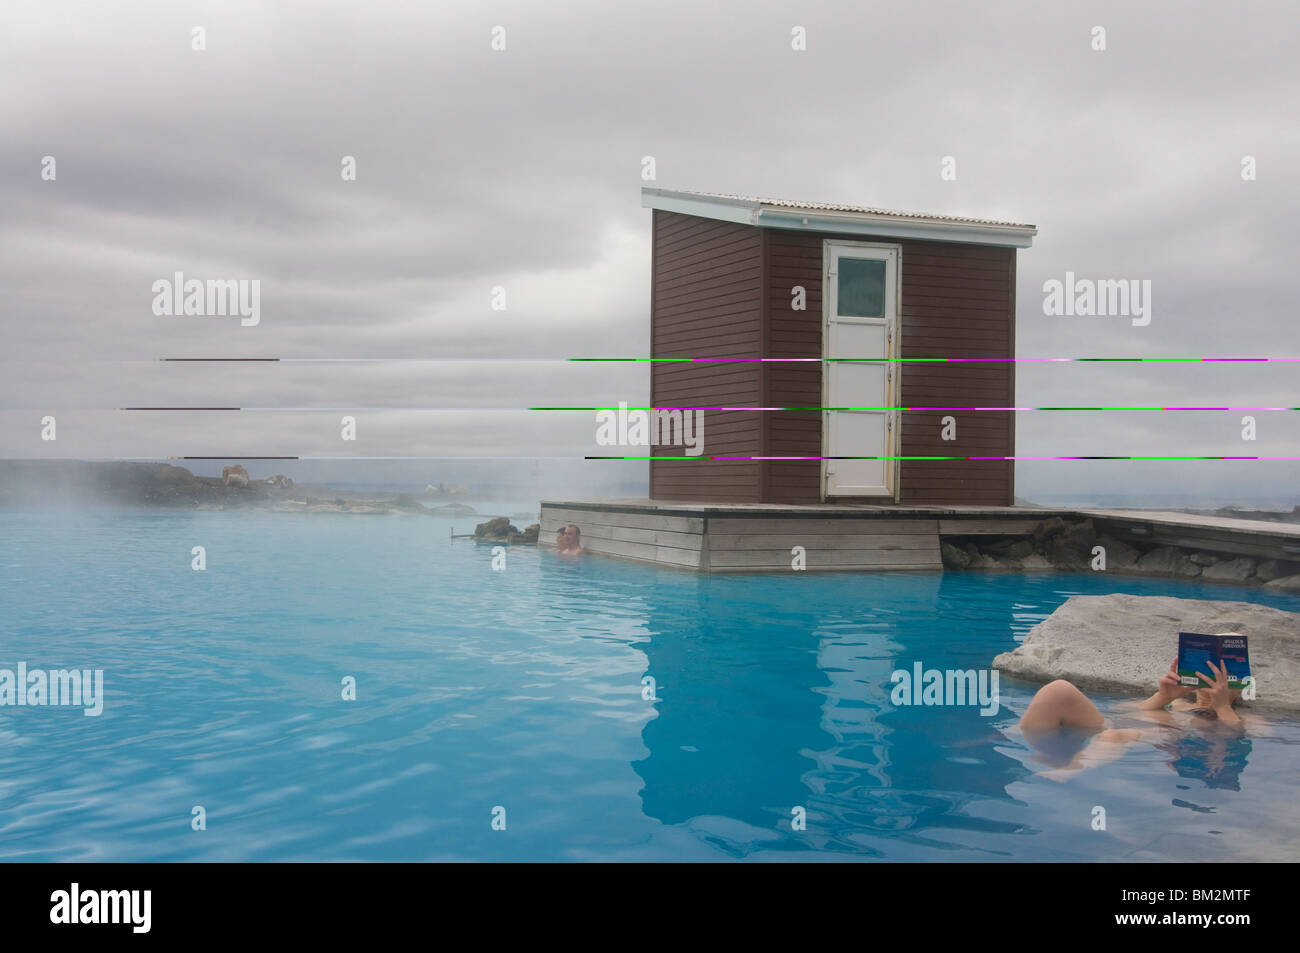 Young woman enjoying echelle Hot spring, Reykjavík, Islande, régions polaires Photo Stock